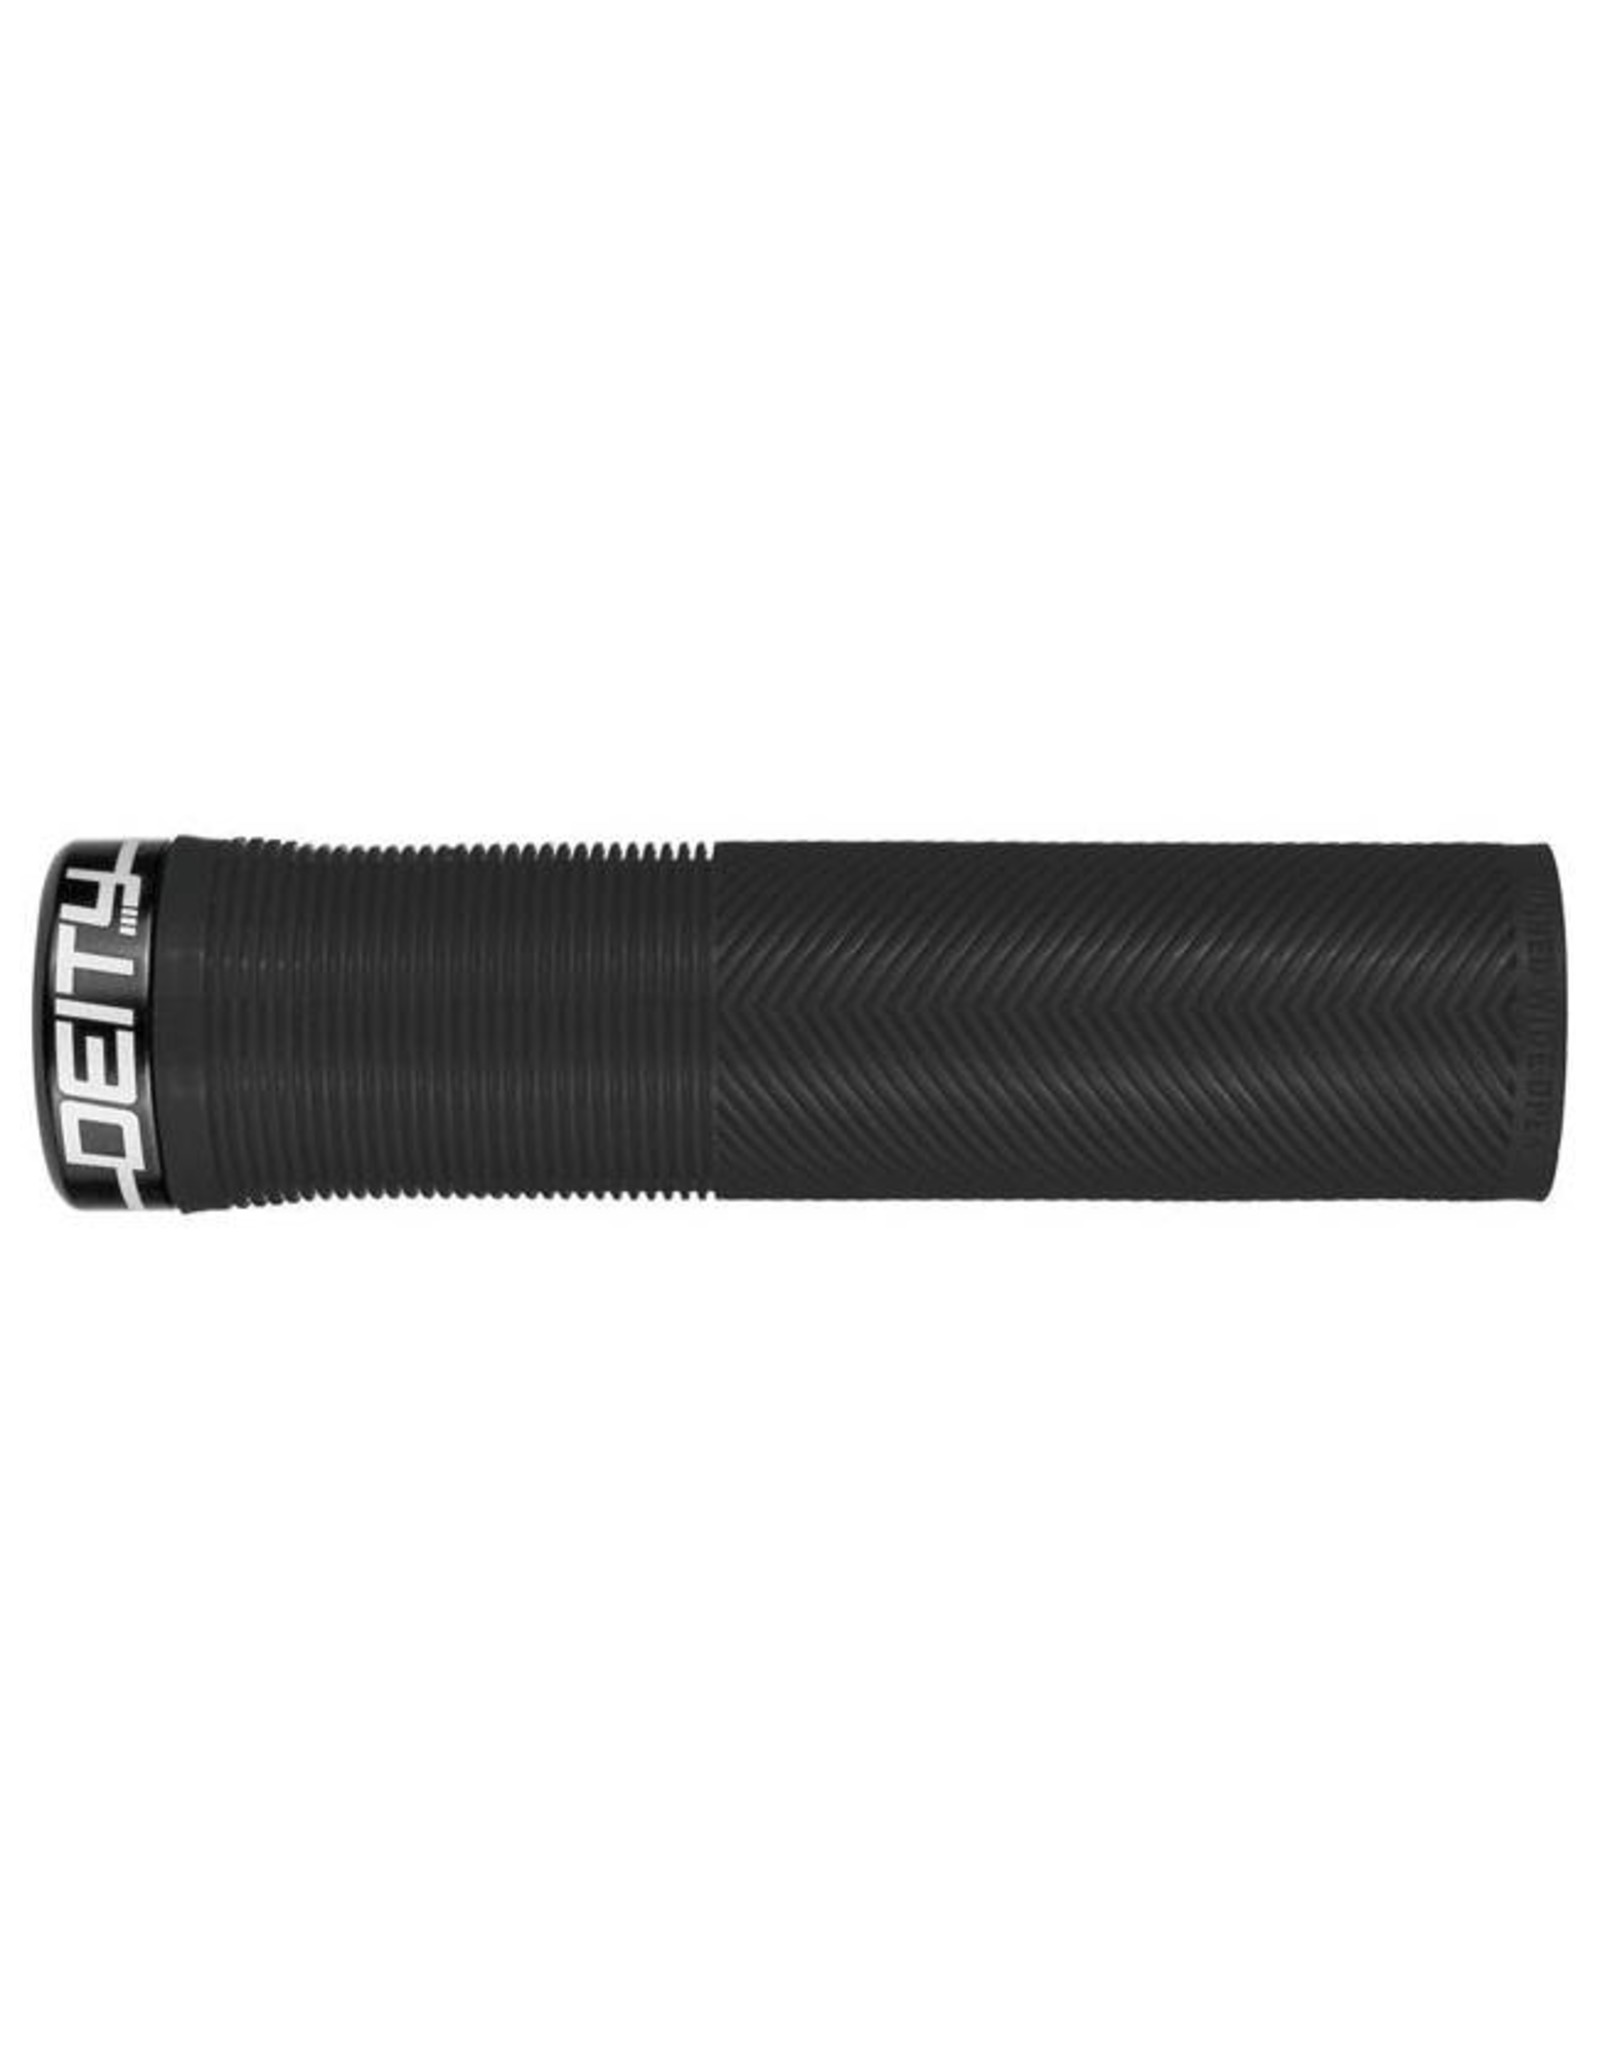 Deity Components Deity Knuckleduster Lock-on Grips: Black with Black Clamp